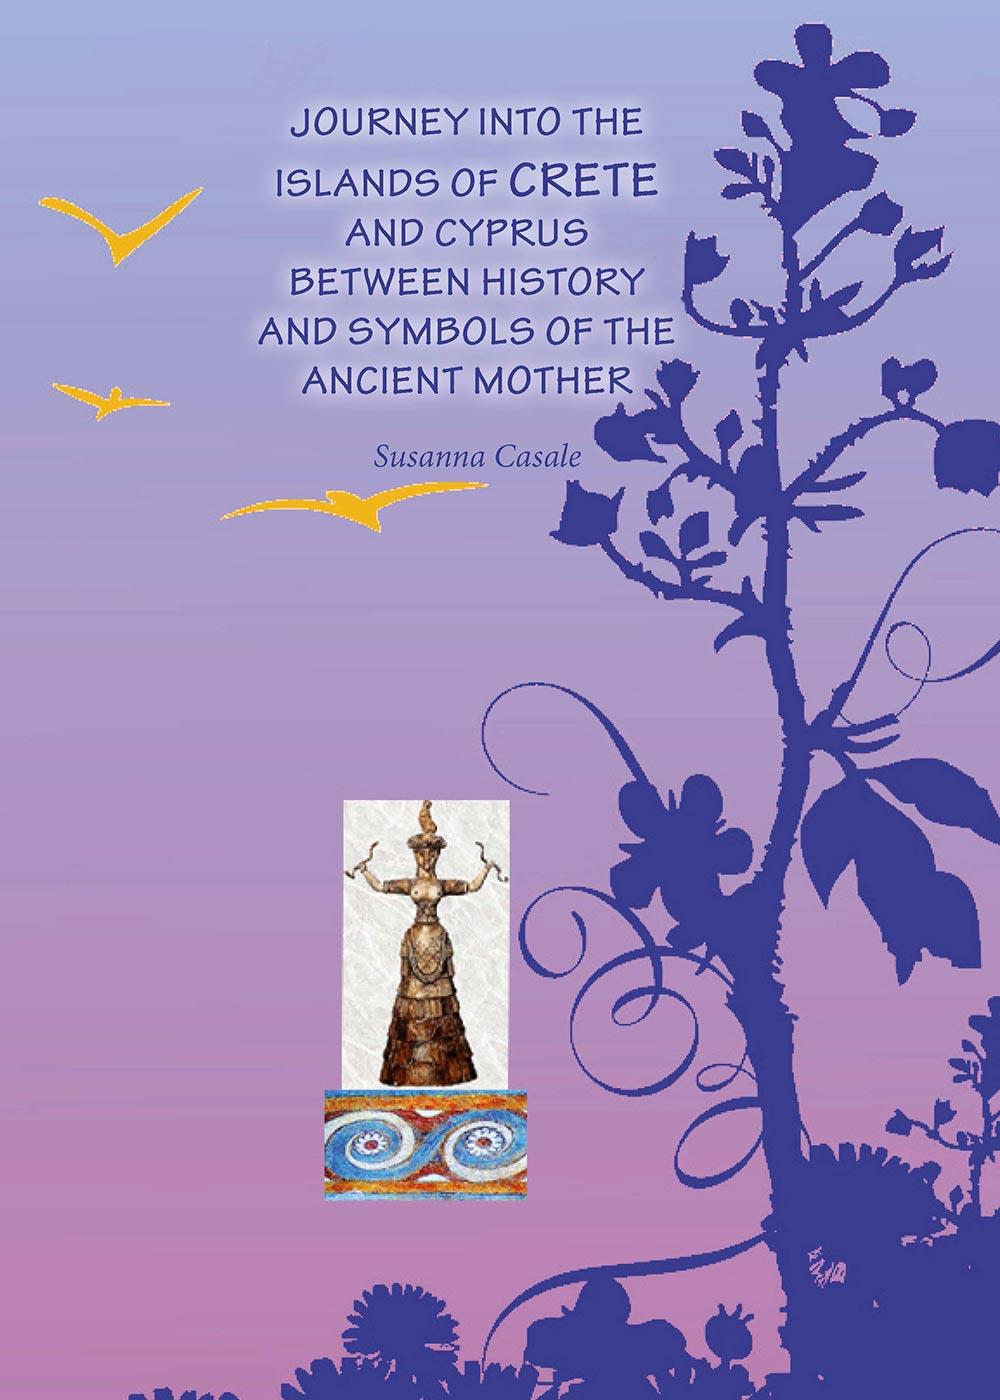 Journey into islands of Crete and Cyprus between history and symbols of the ancient mother